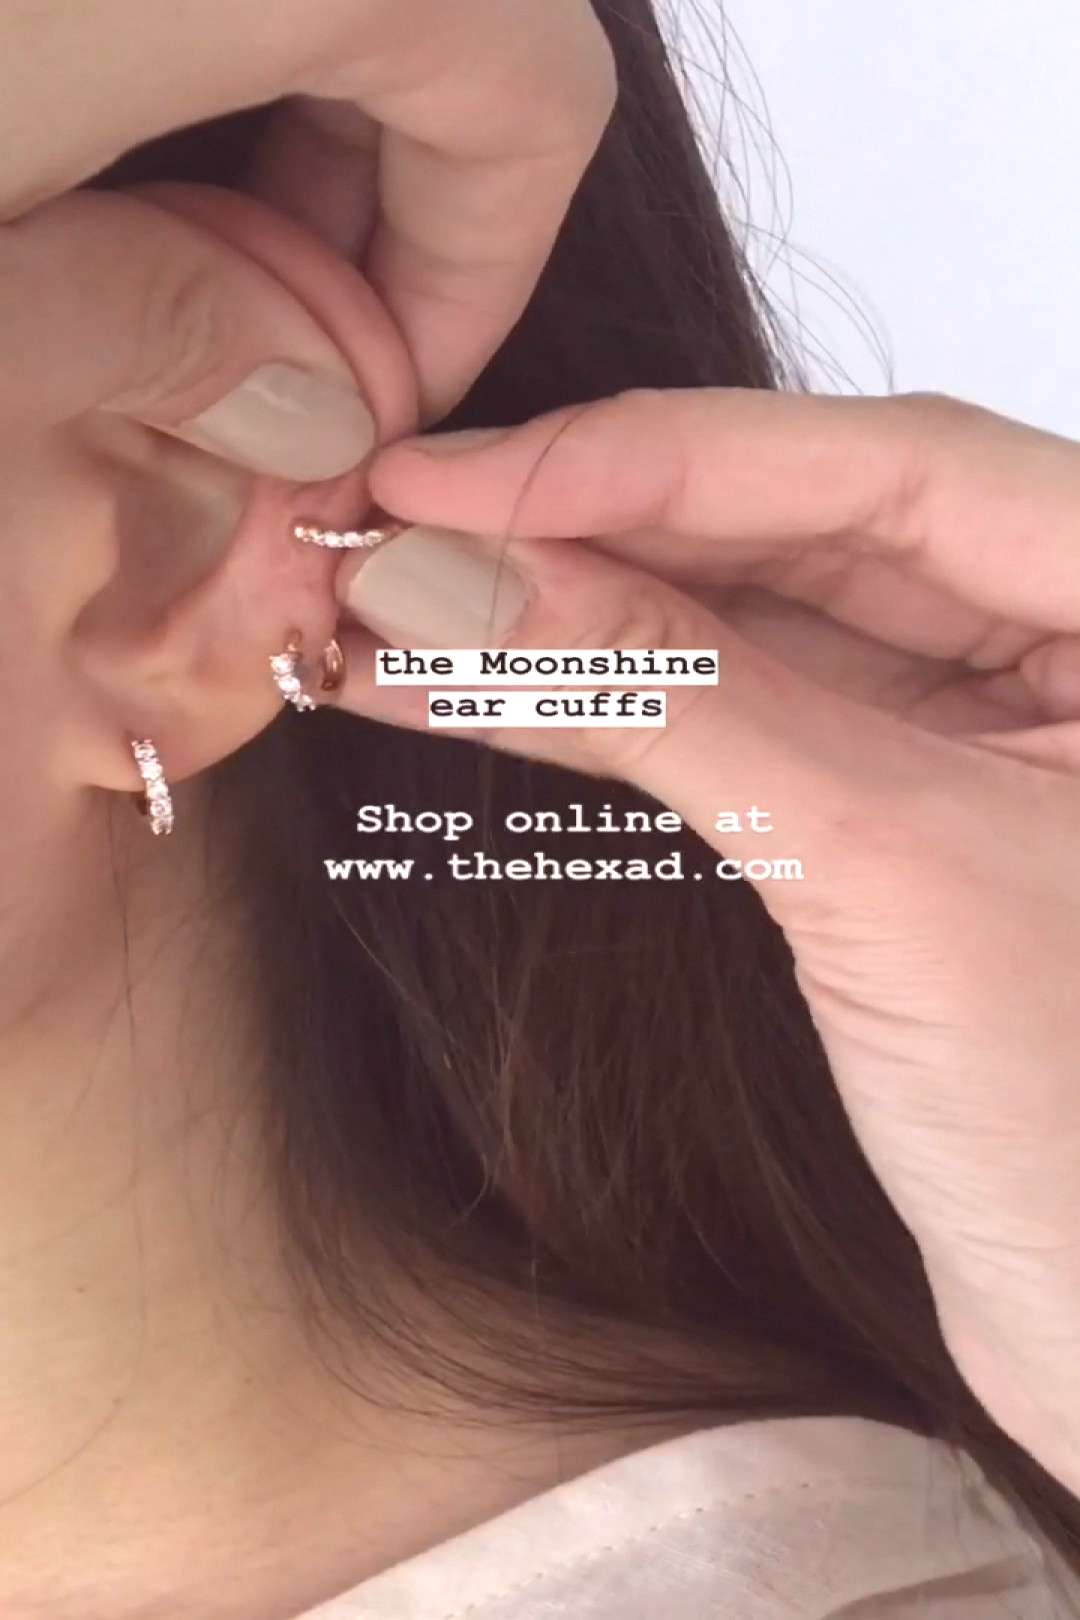 Add a touch of sparkle to your ear party with the Moonshine ear cuffs ✨no piercings needed, just